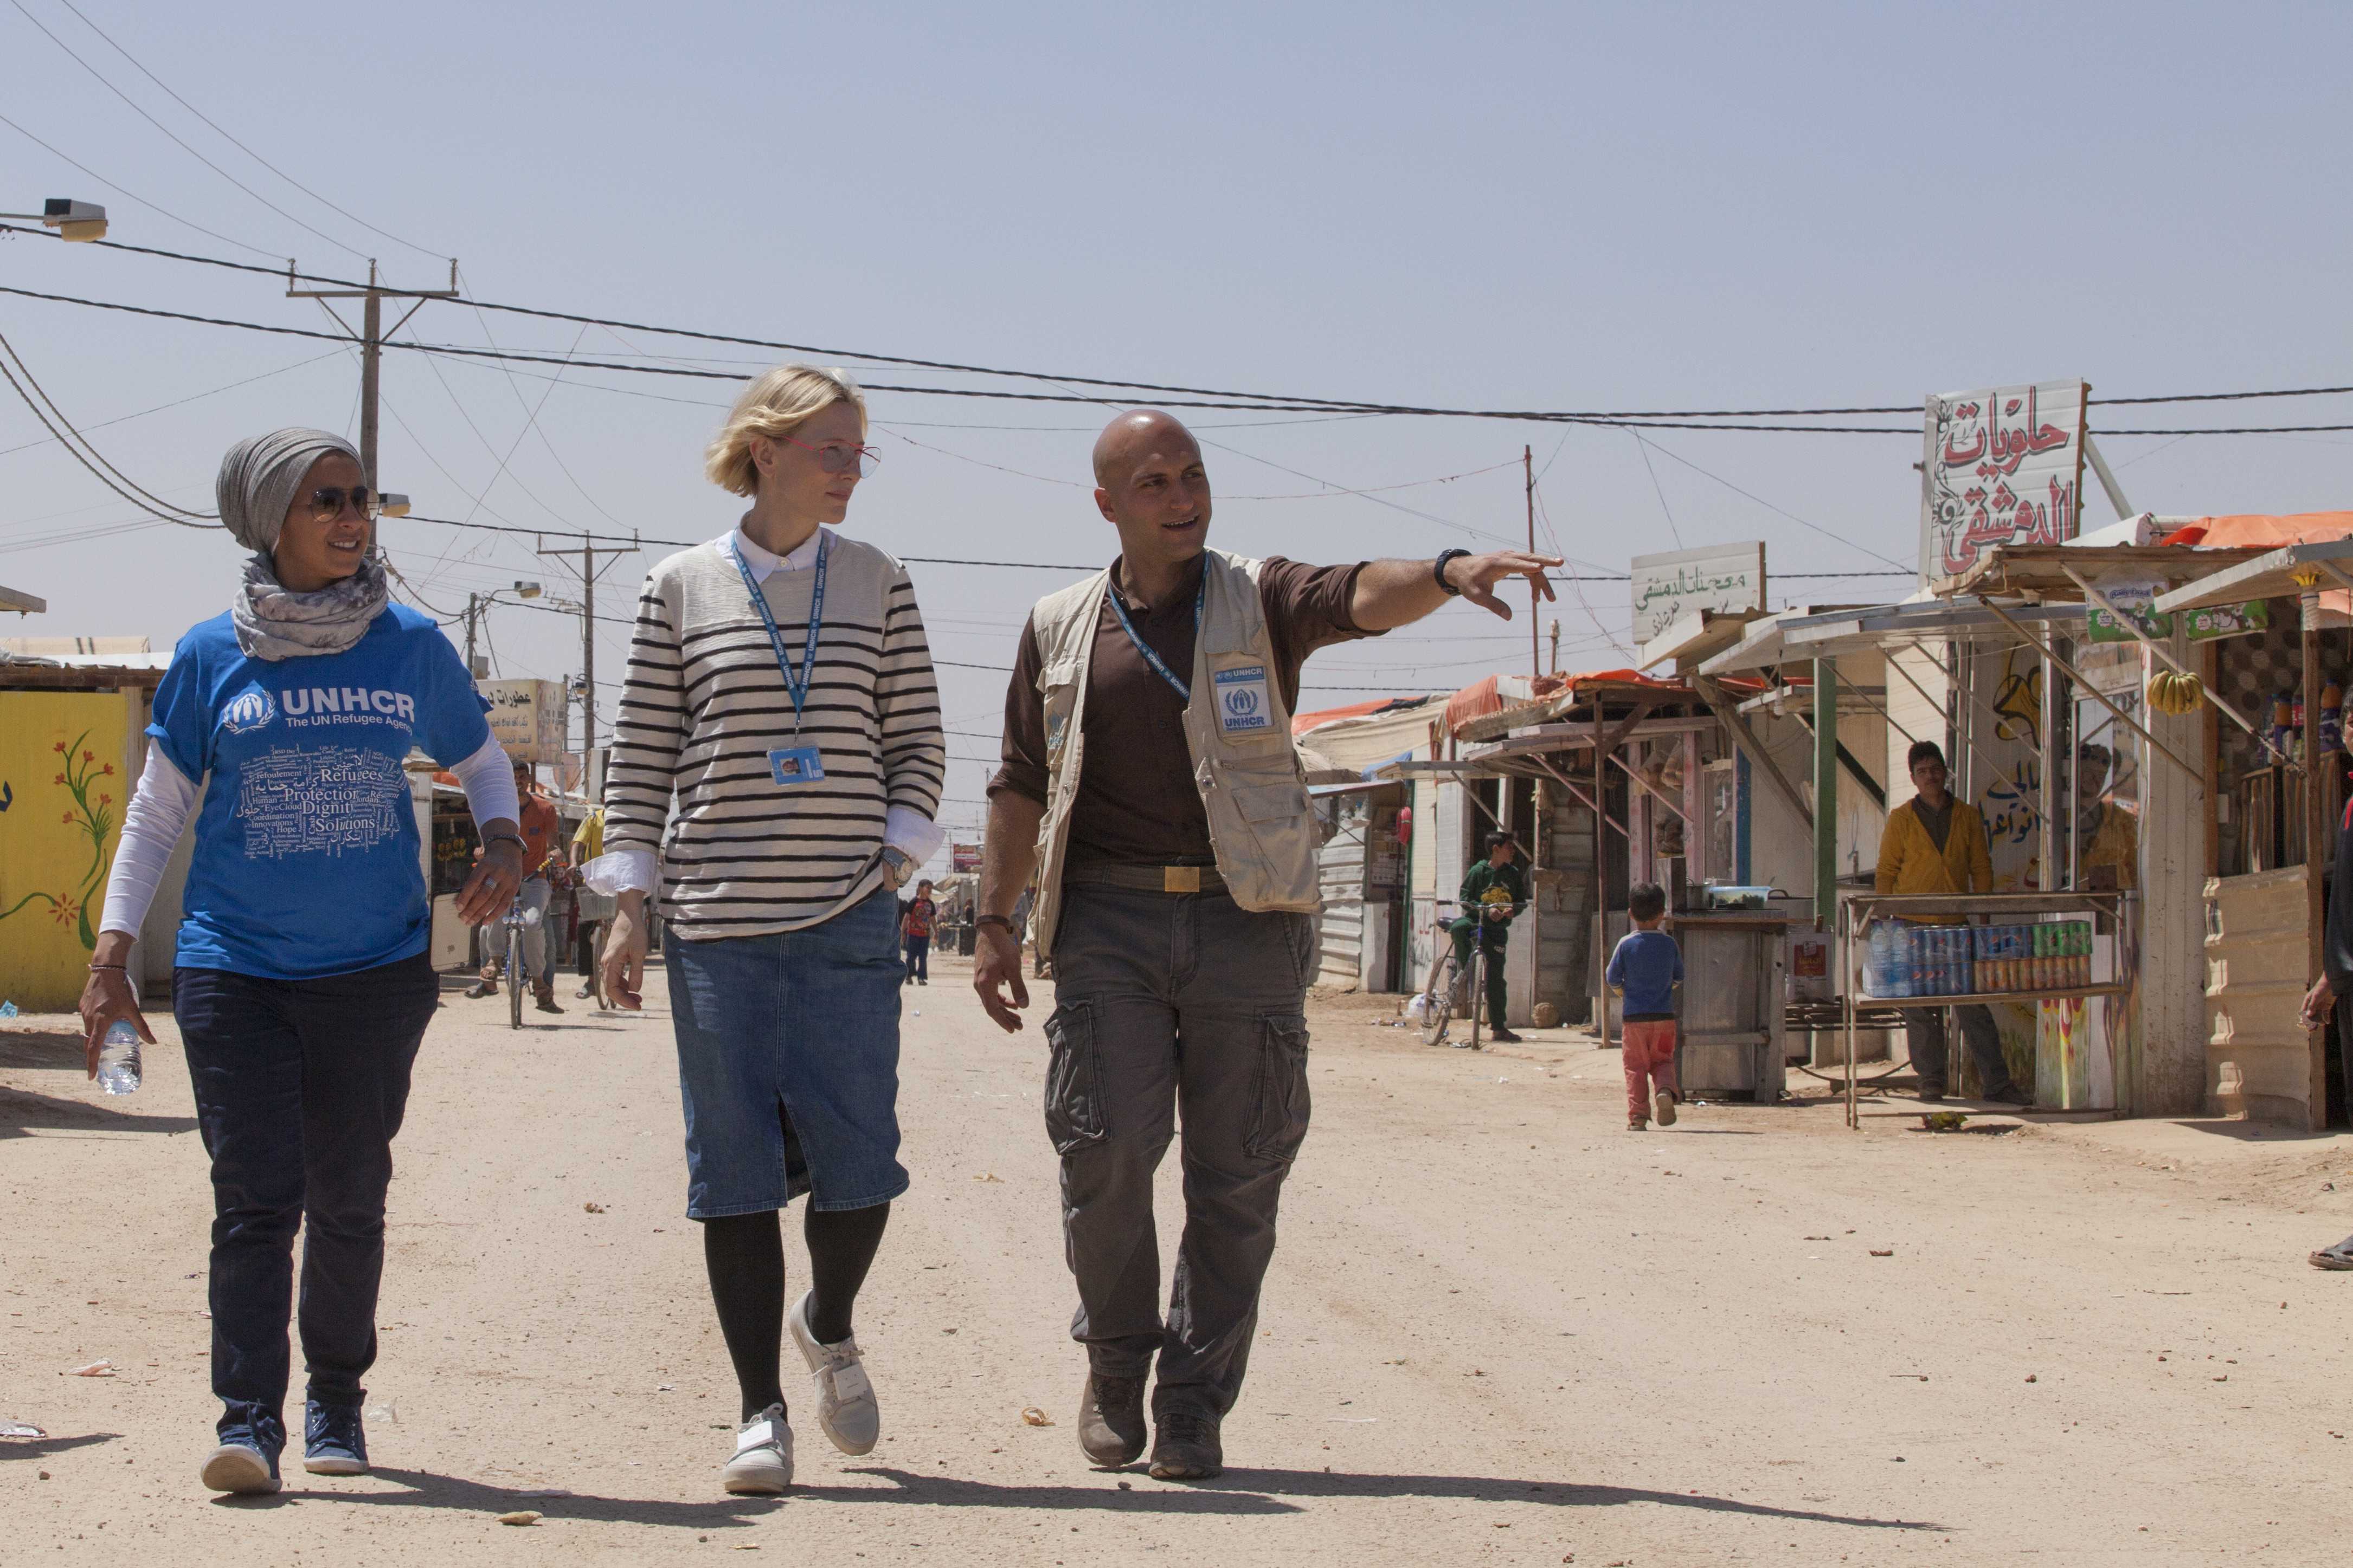 UNHCR Goodwill Ambassador Cate Blanchett and Camp Manager Hovig Etyemezian at Zaatari refugee camp walk Champs Elysees. Zaatari has 3000 shops throughout the camp, many of which are located on this main road. ; UNHCR Goodwill Ambassador Cate Blanchett visits Syrian refugees in Jordan